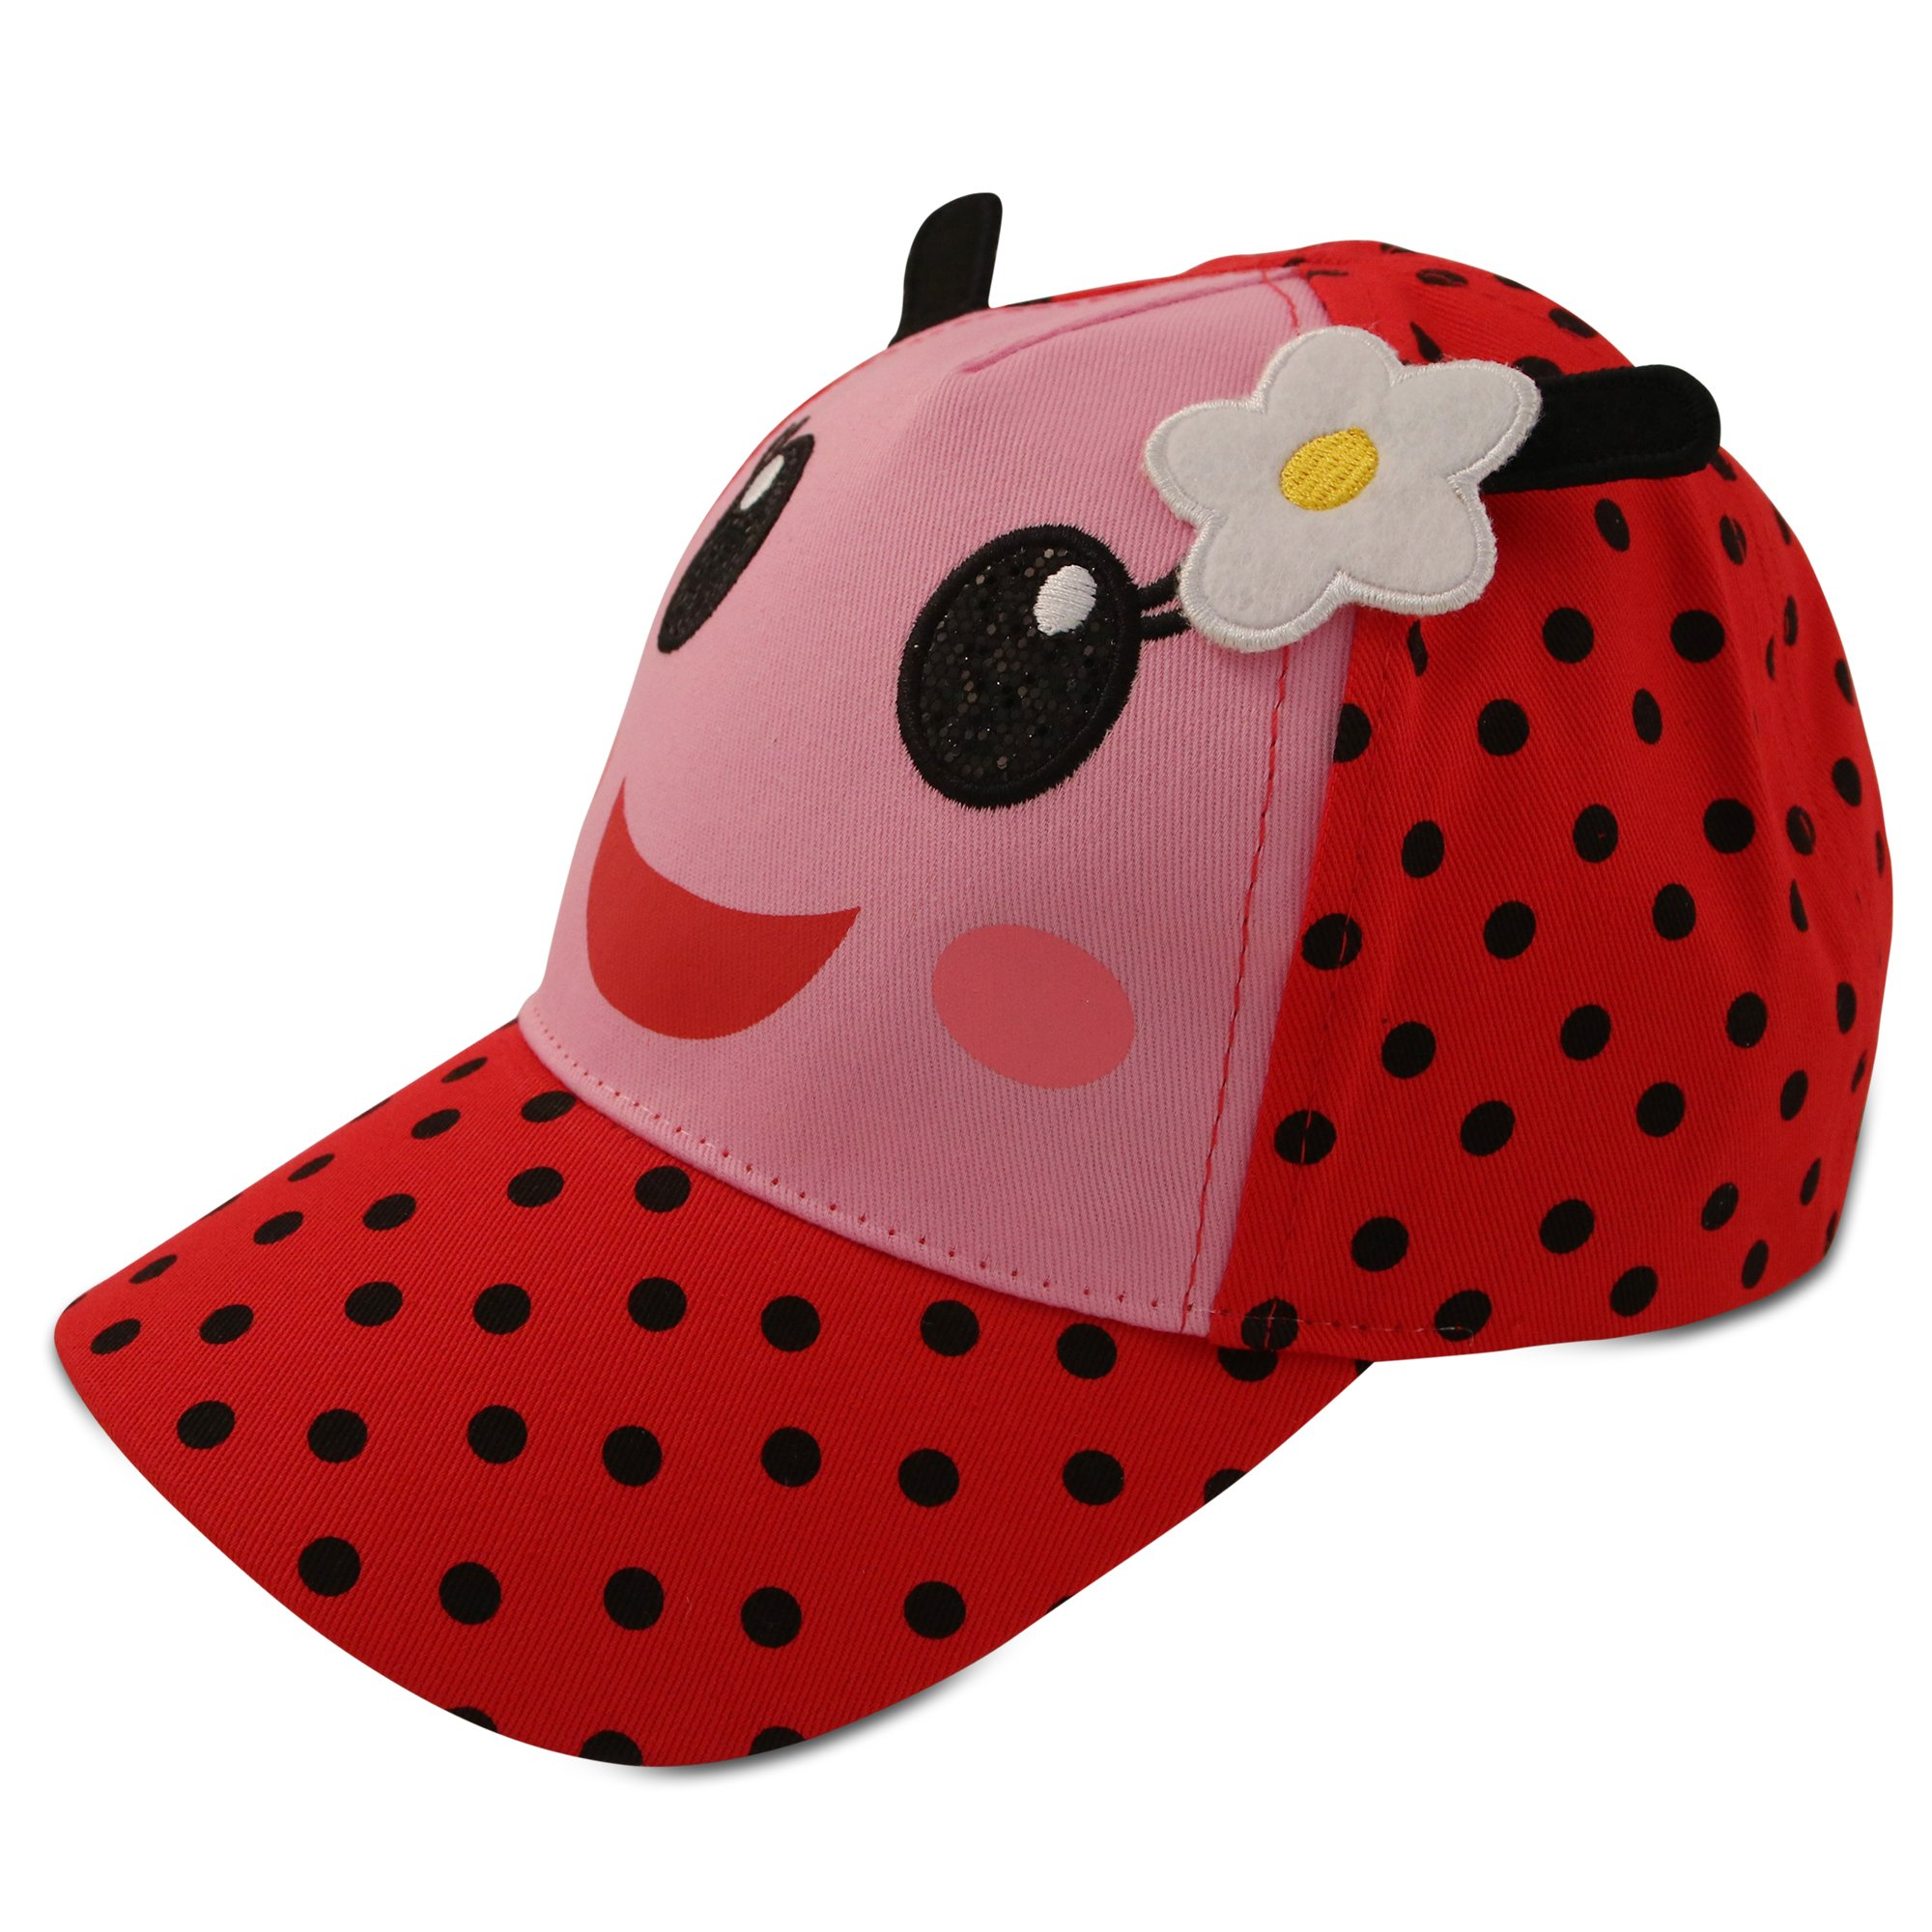 ABG Accessories Toddler Girls Cotton Baseball Cap with Assorted Animal Critter Design, Age 2-4 (Ladybug Design – Red/Black)